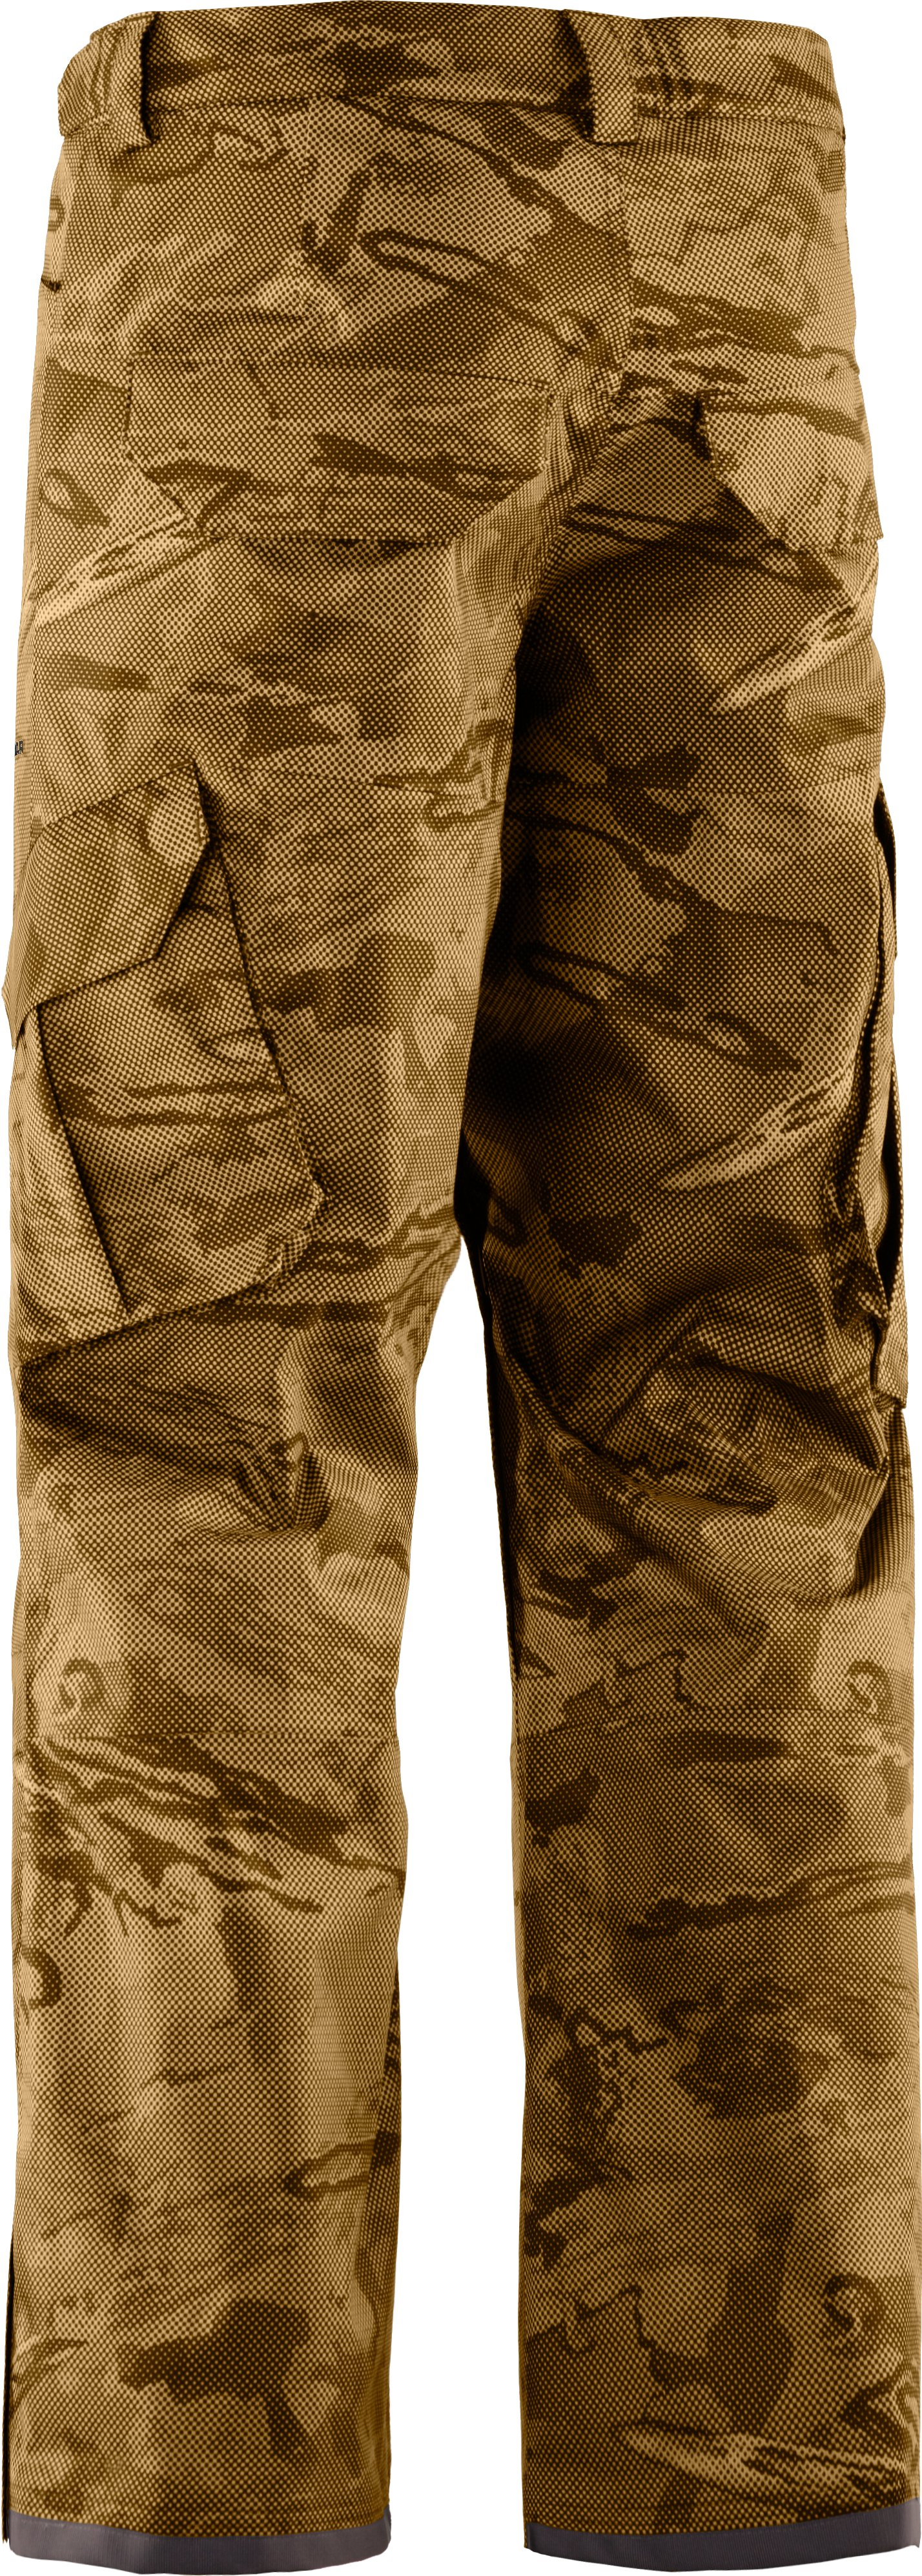 Men's ColdGear® Infrared Snocone Pants, DEER HIDE